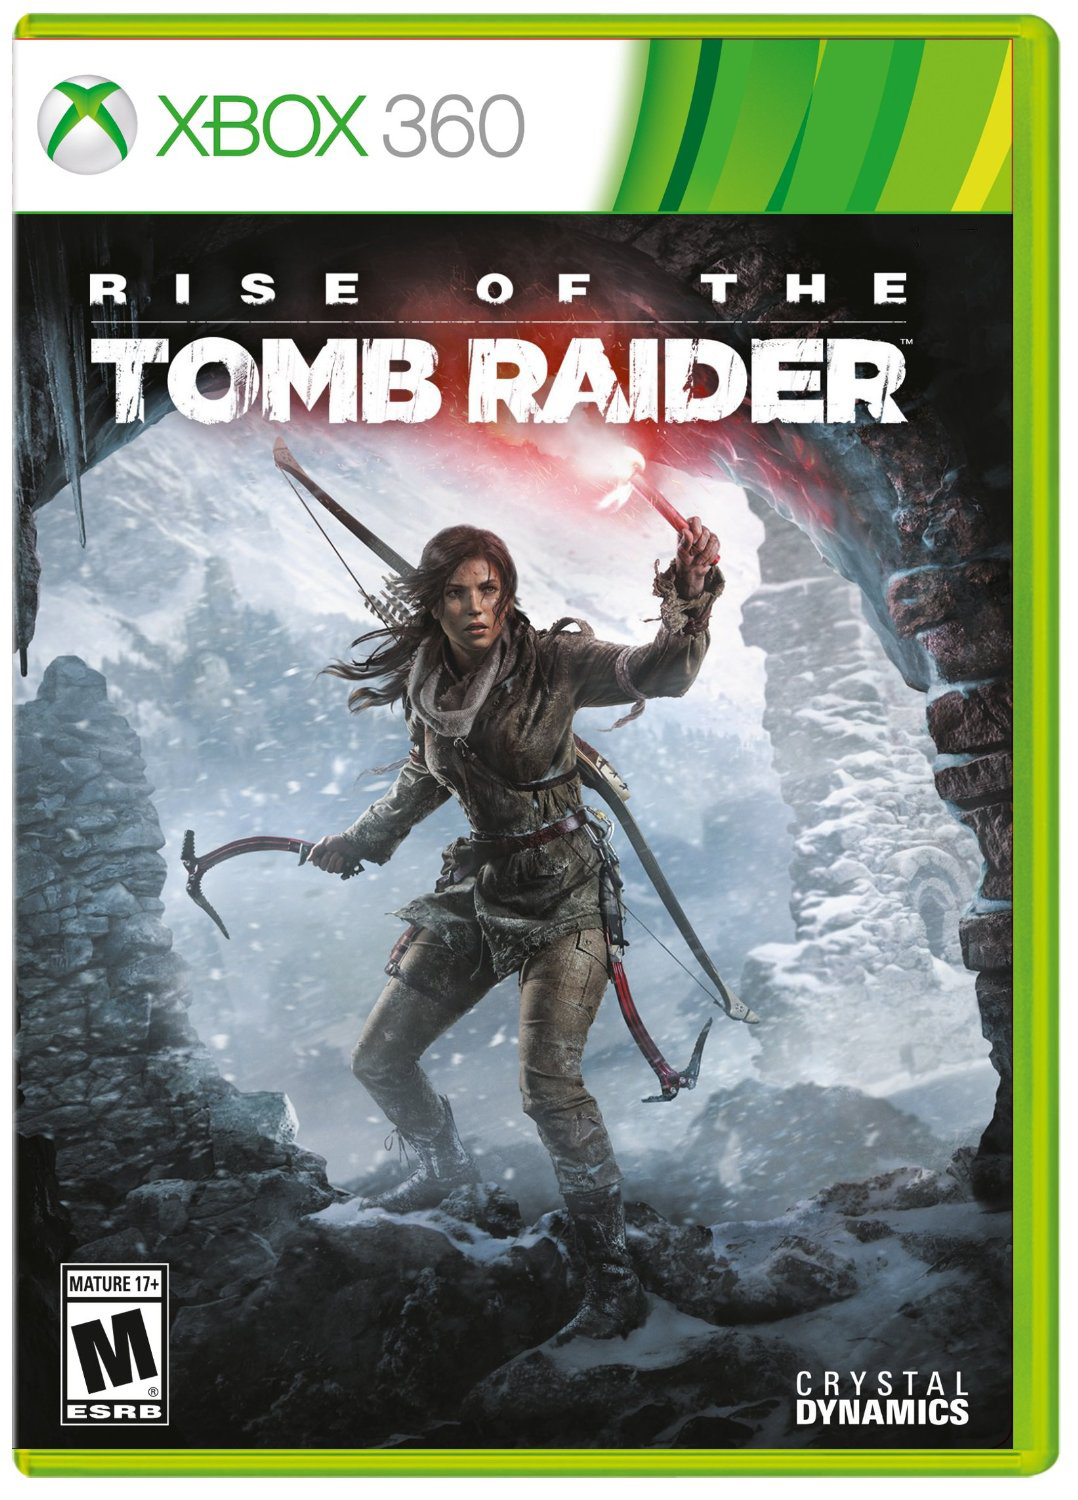 Poster for Rise of the Tomb Raider